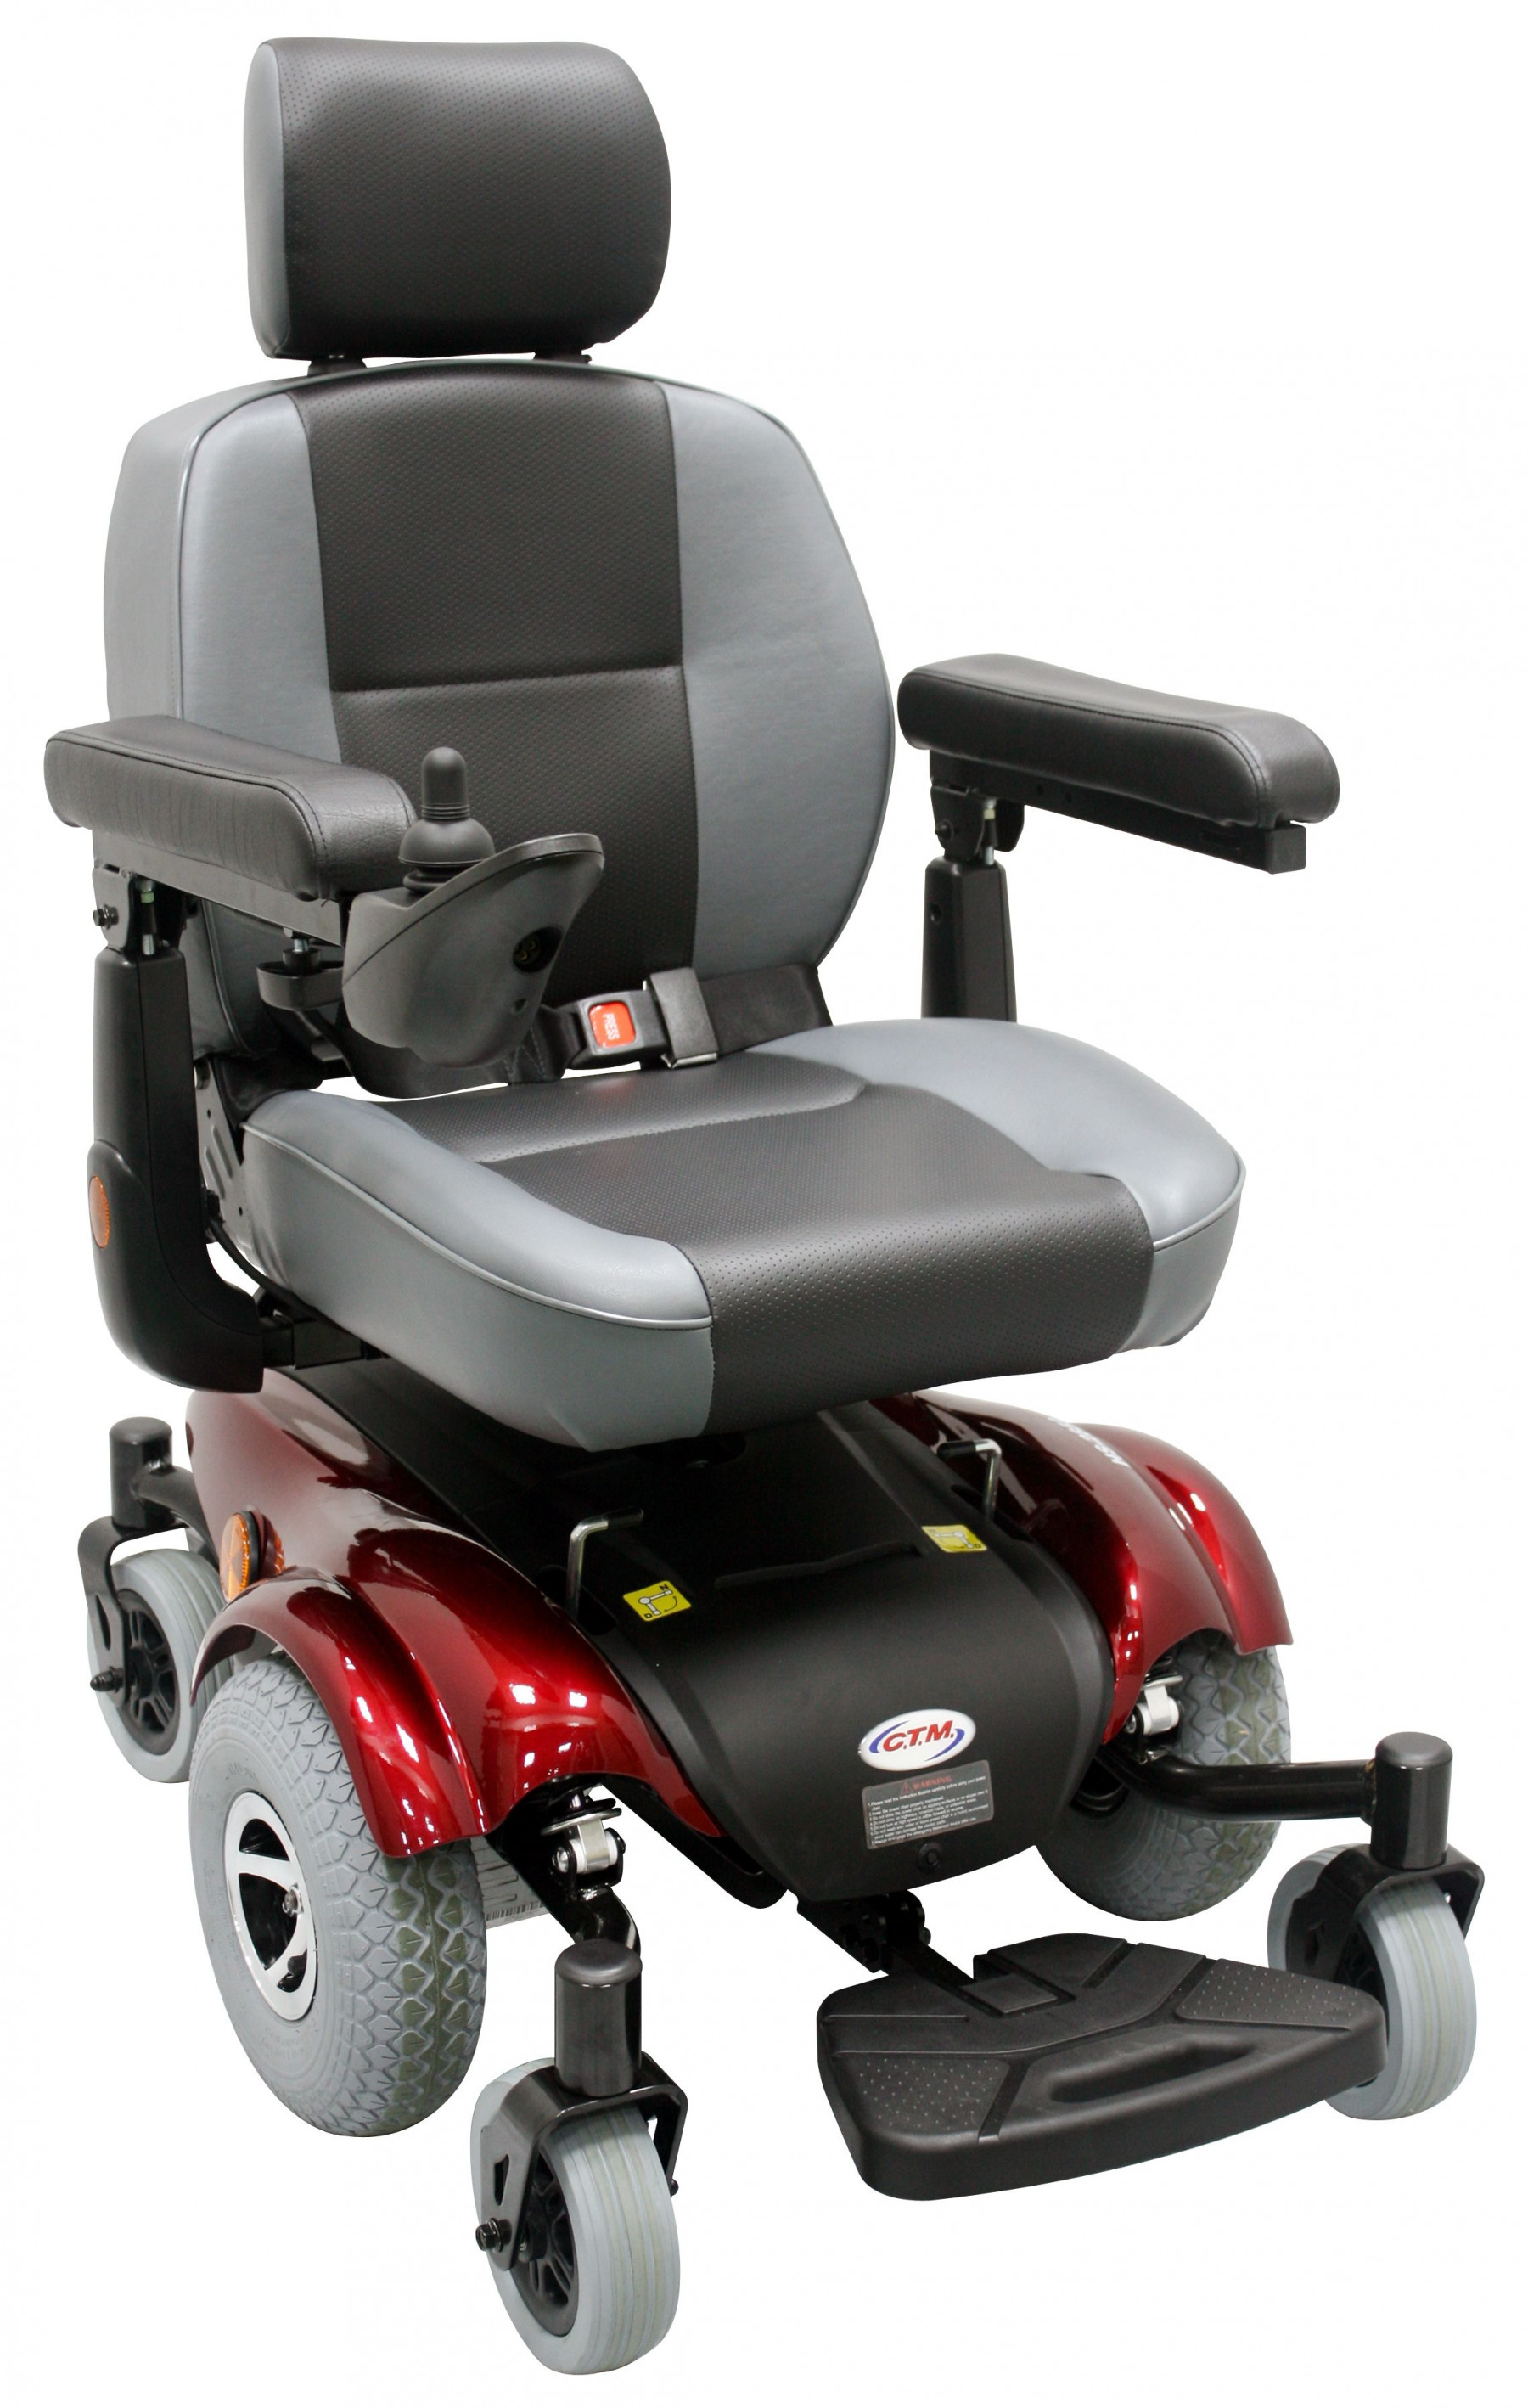 CTM HS 2850 Power Wheelchair for Sale